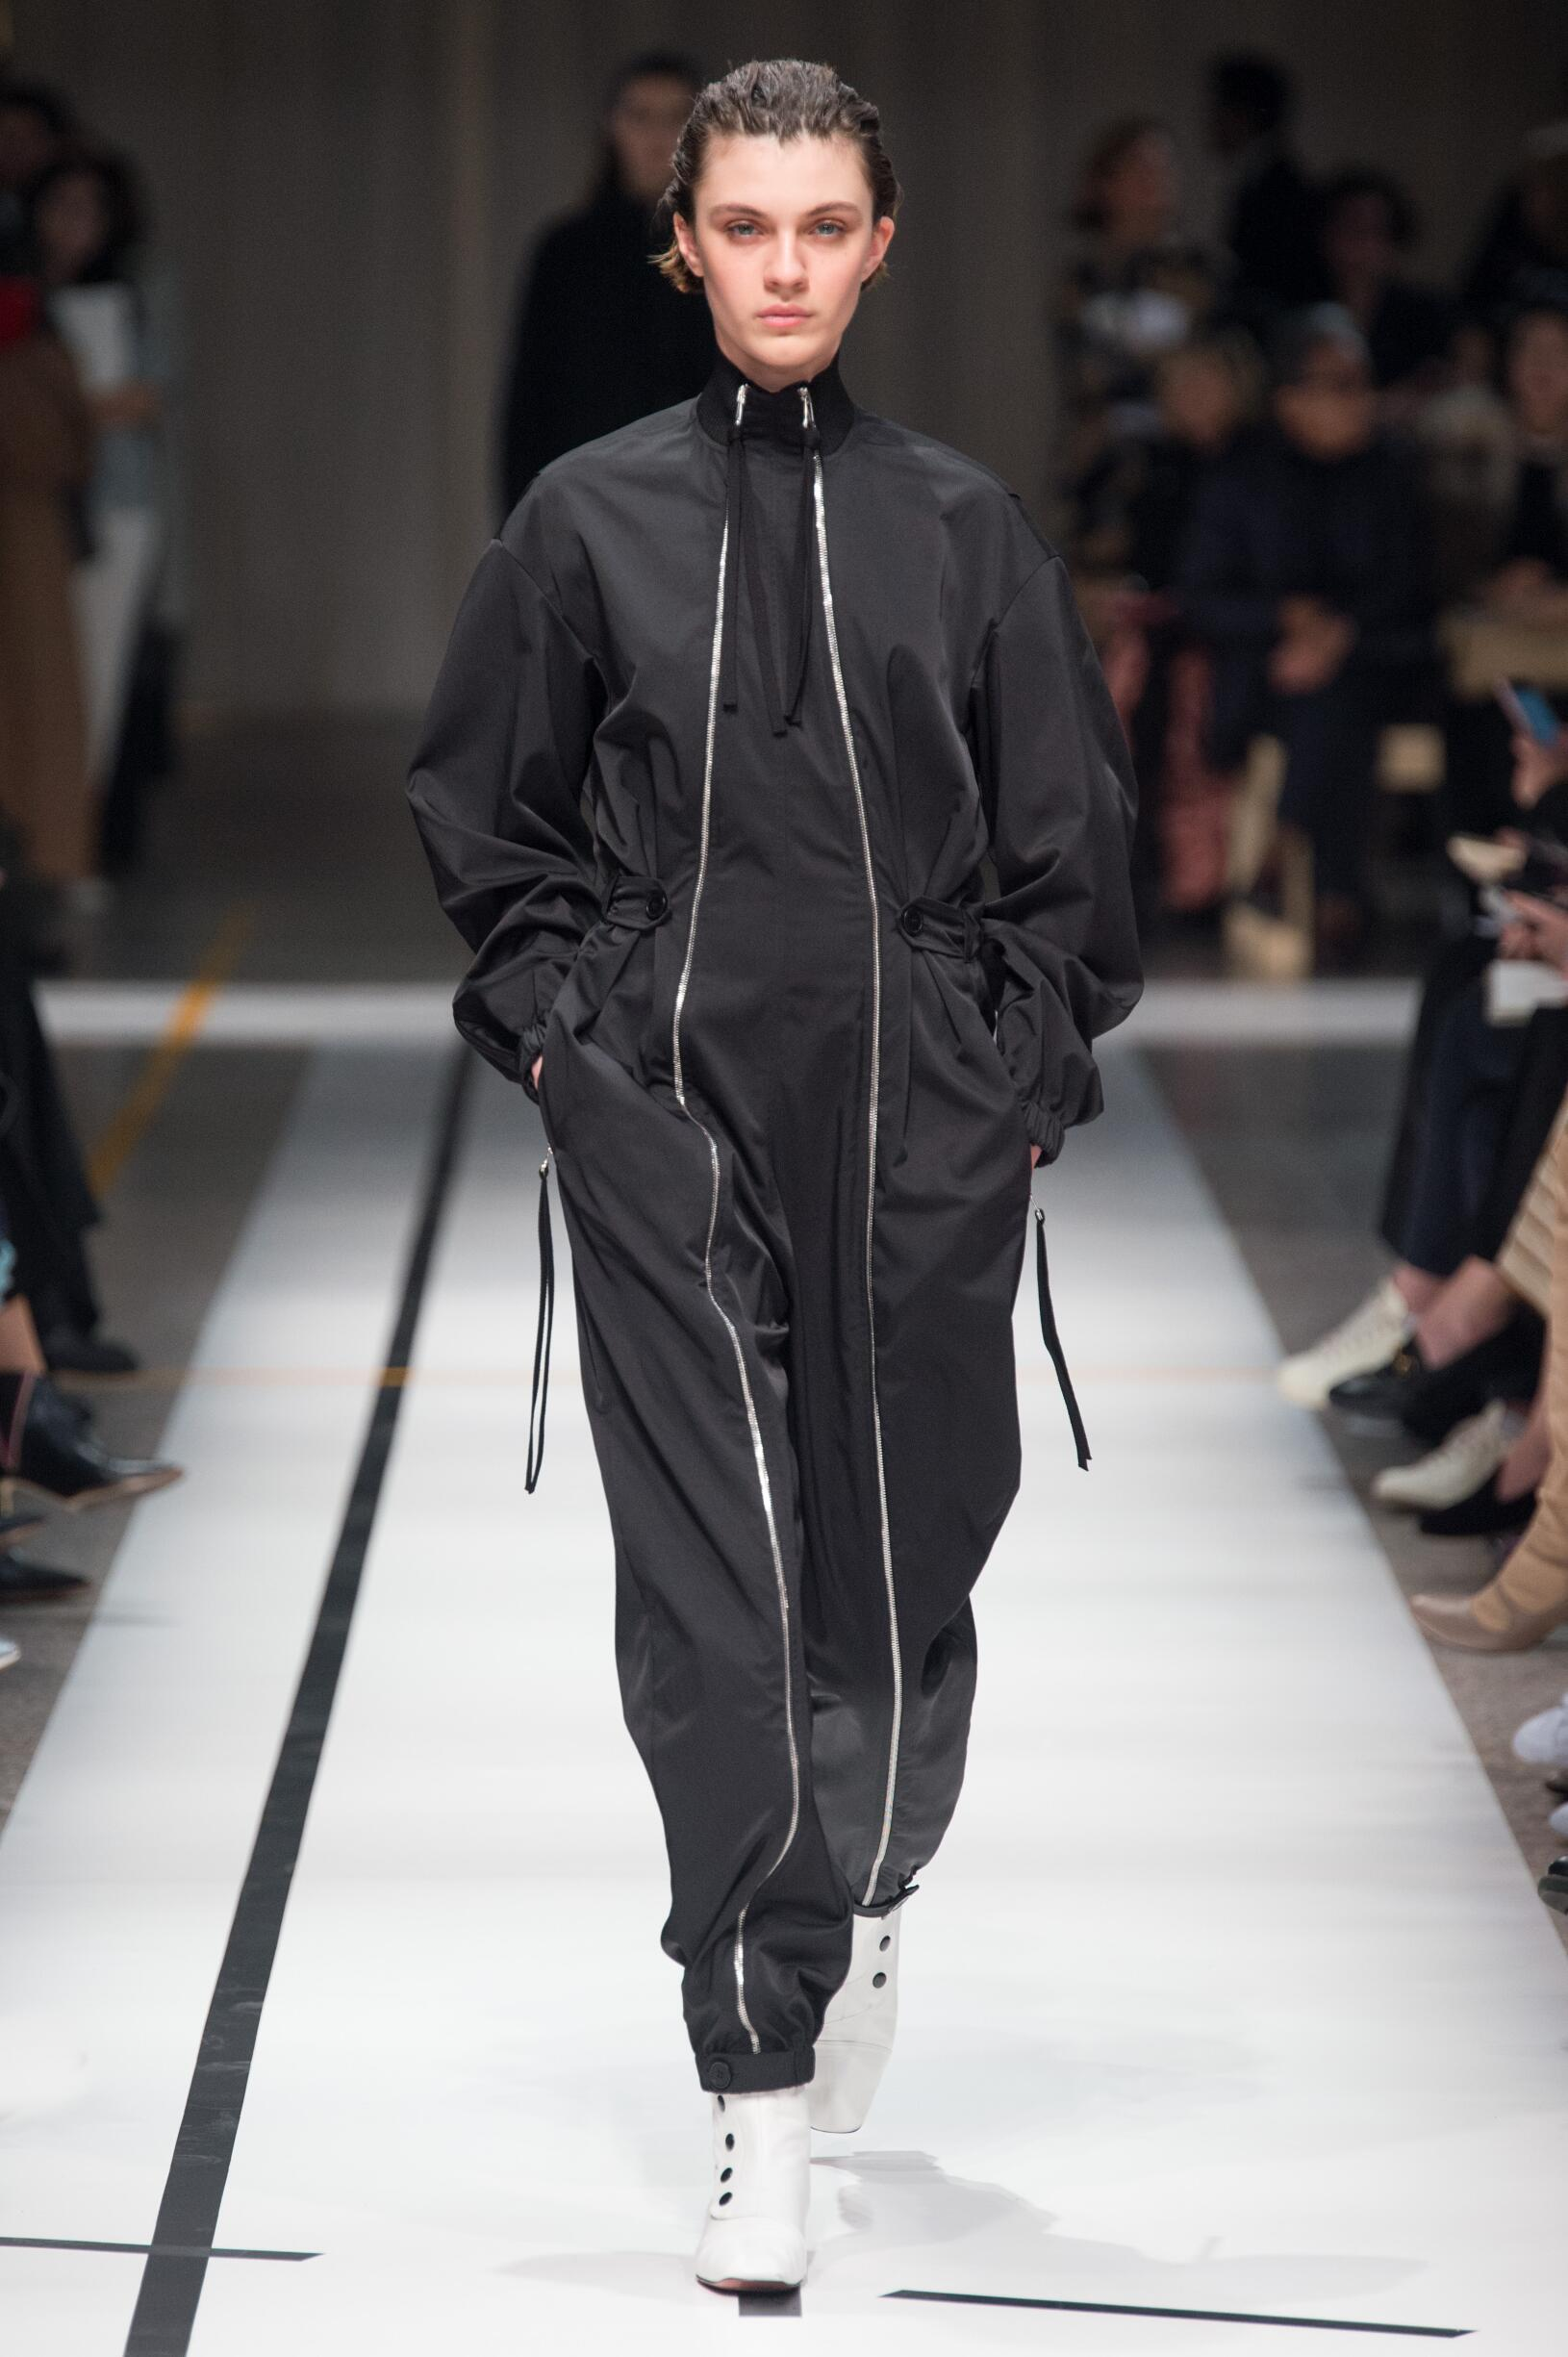 Sportmax Milan Fashion Week Womenswear